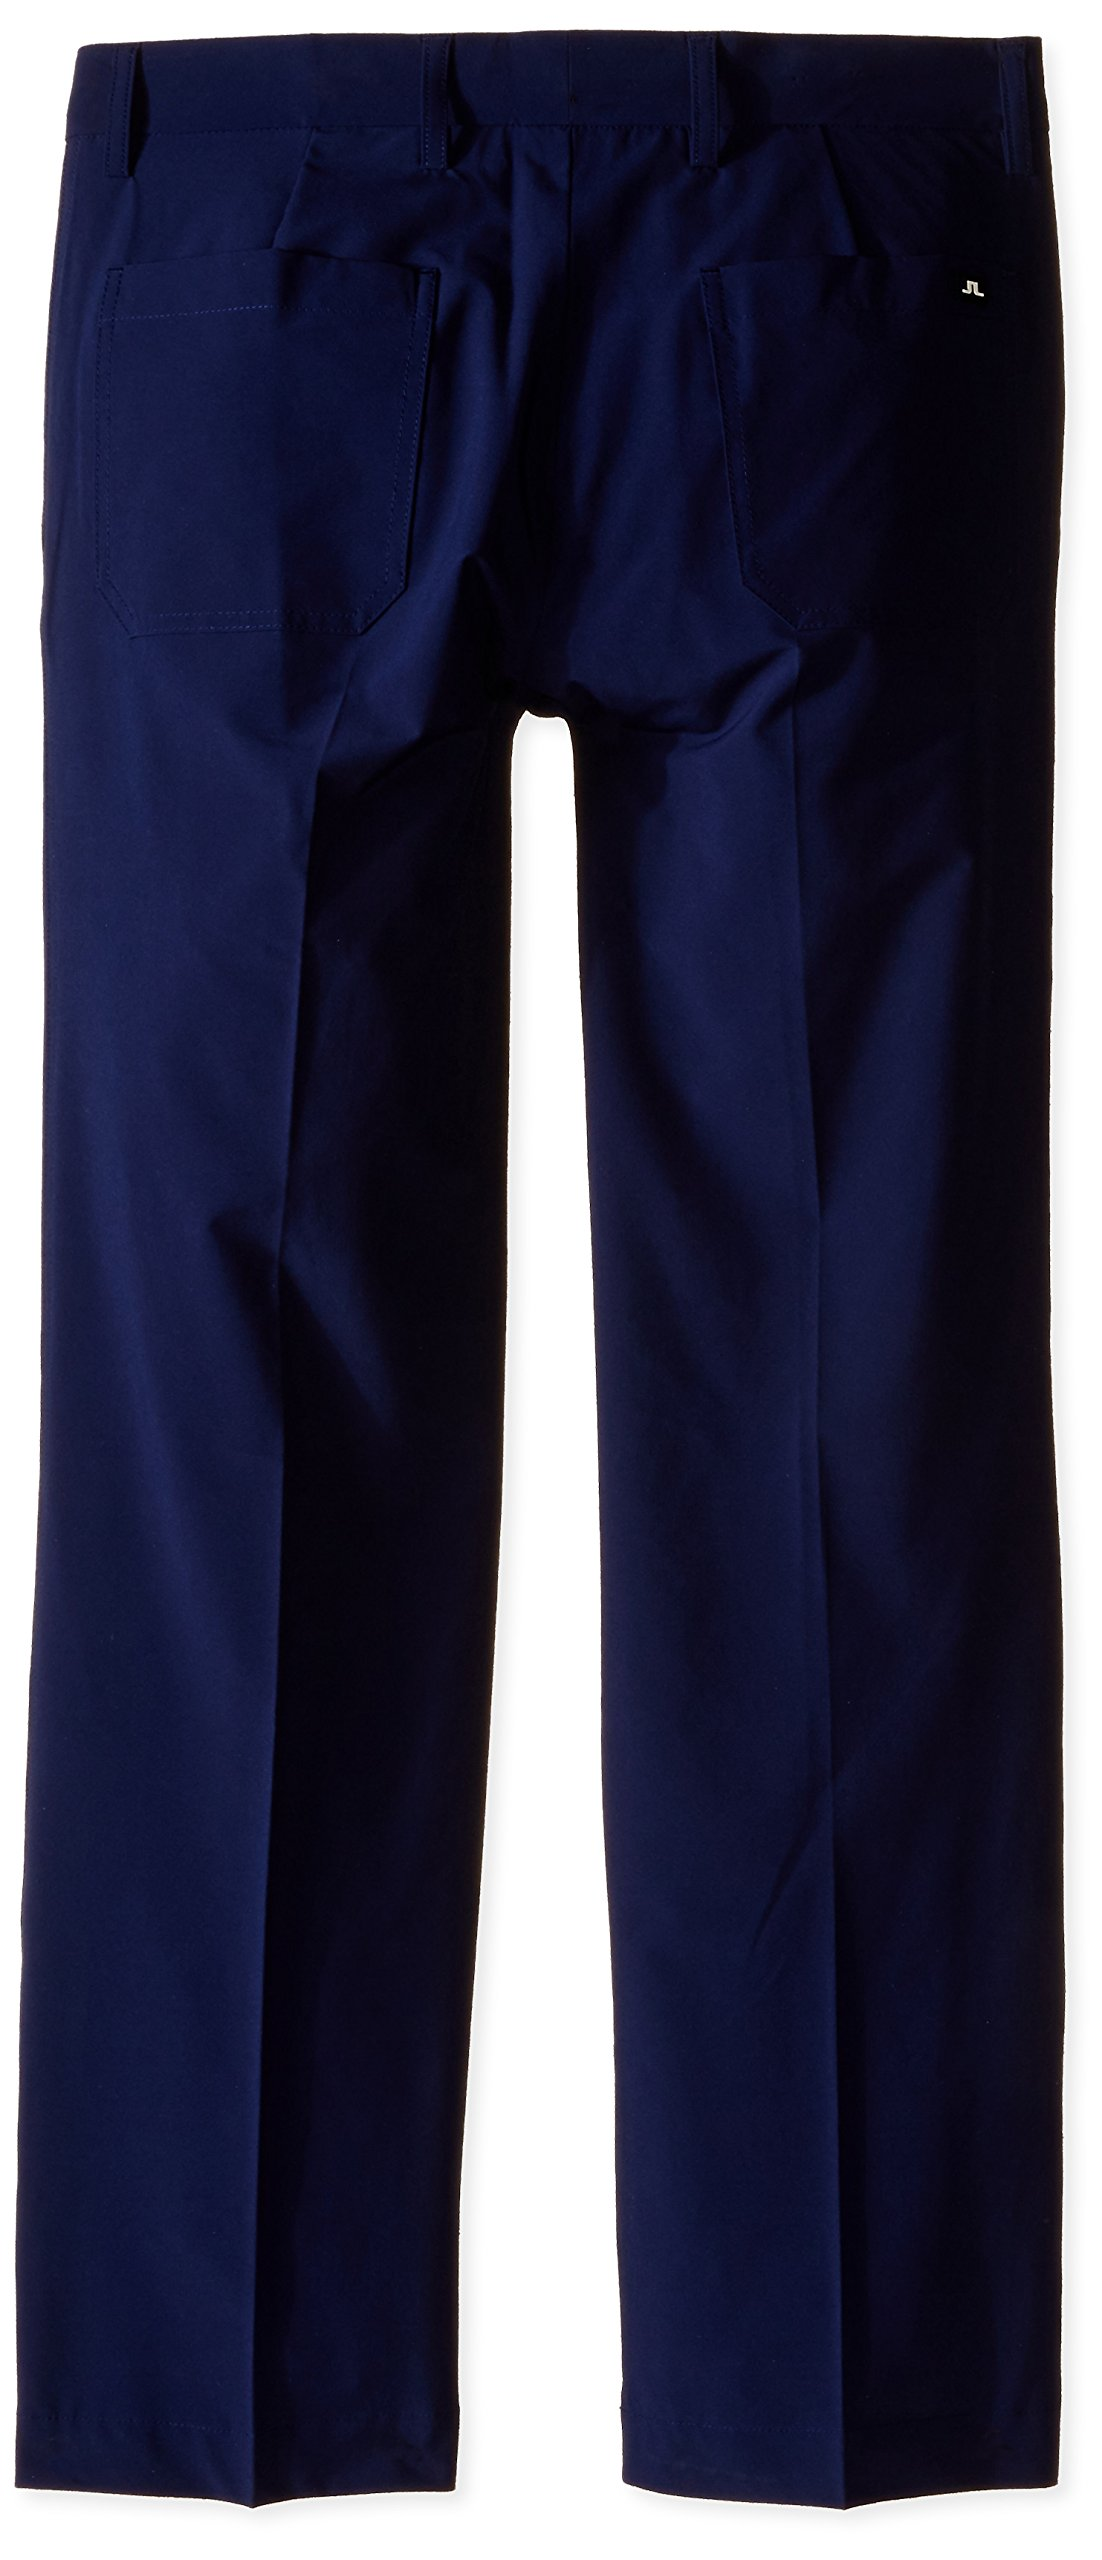 J.Lindeberg Men's M Troon Micro Stretch Golf Pant, Navy Purple, 32x32 by J.Lindeberg (Image #2)